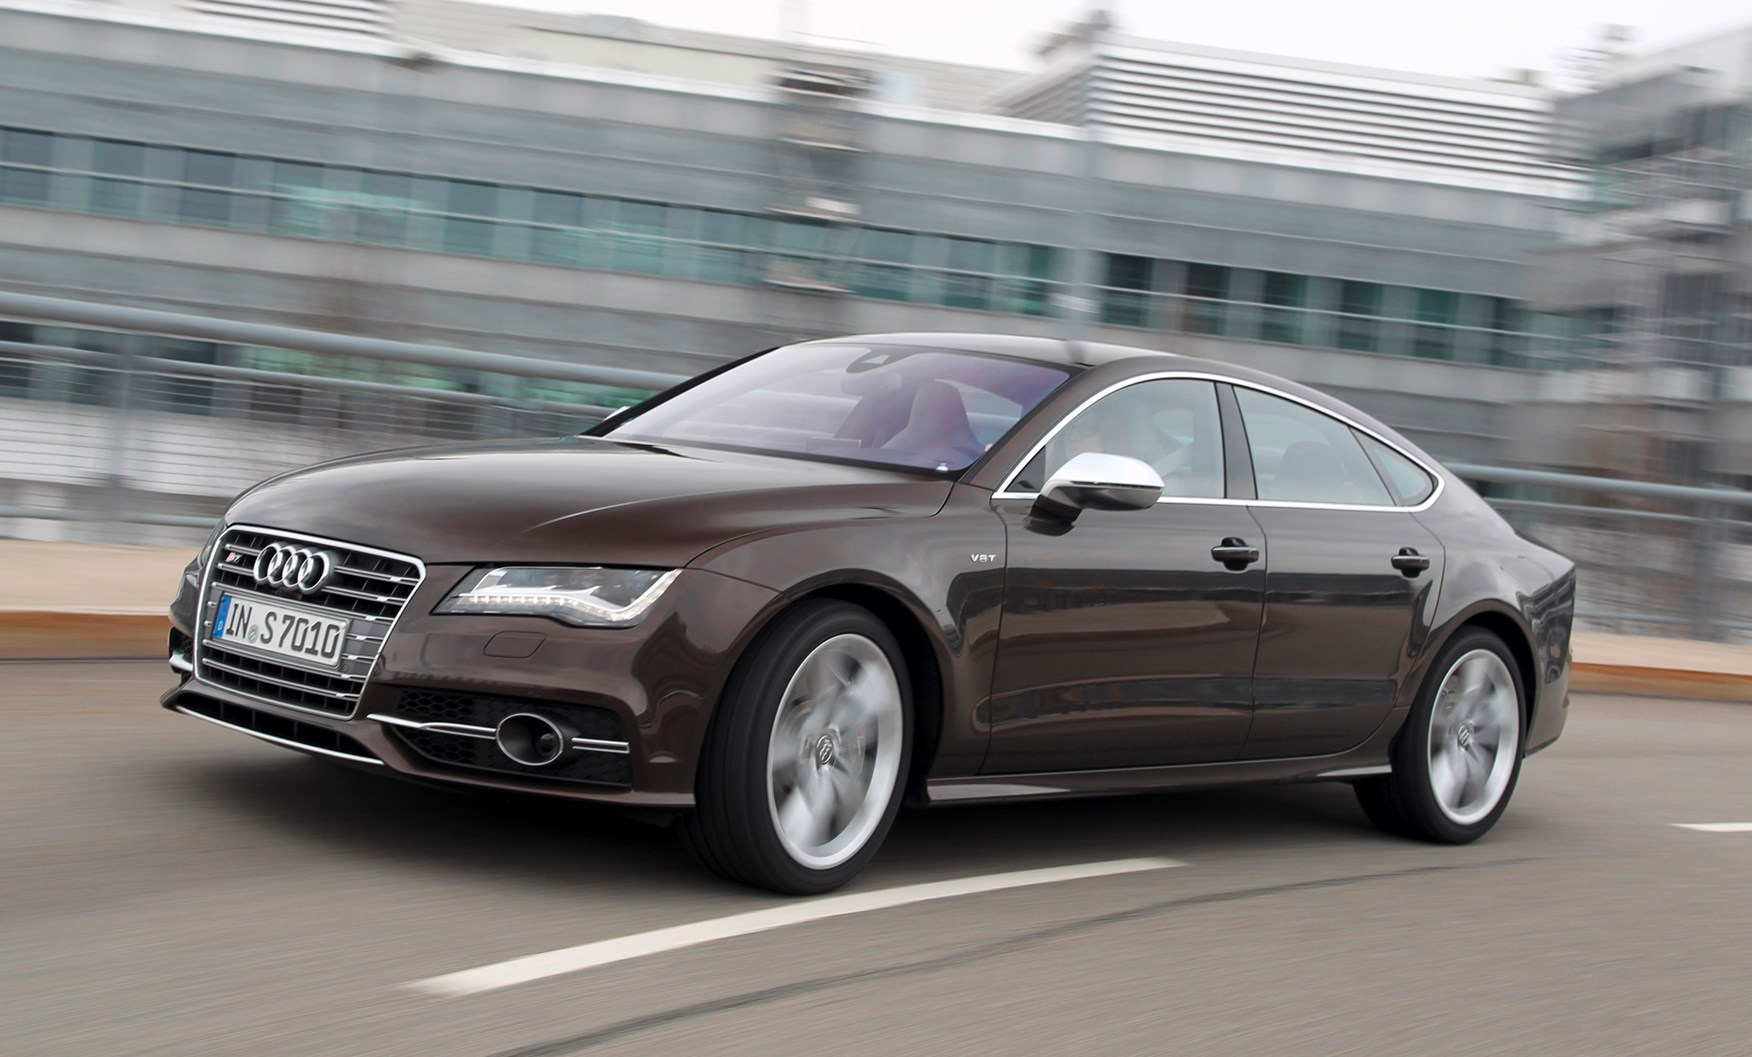 audi a7 s7 review 2012 parkers. Black Bedroom Furniture Sets. Home Design Ideas